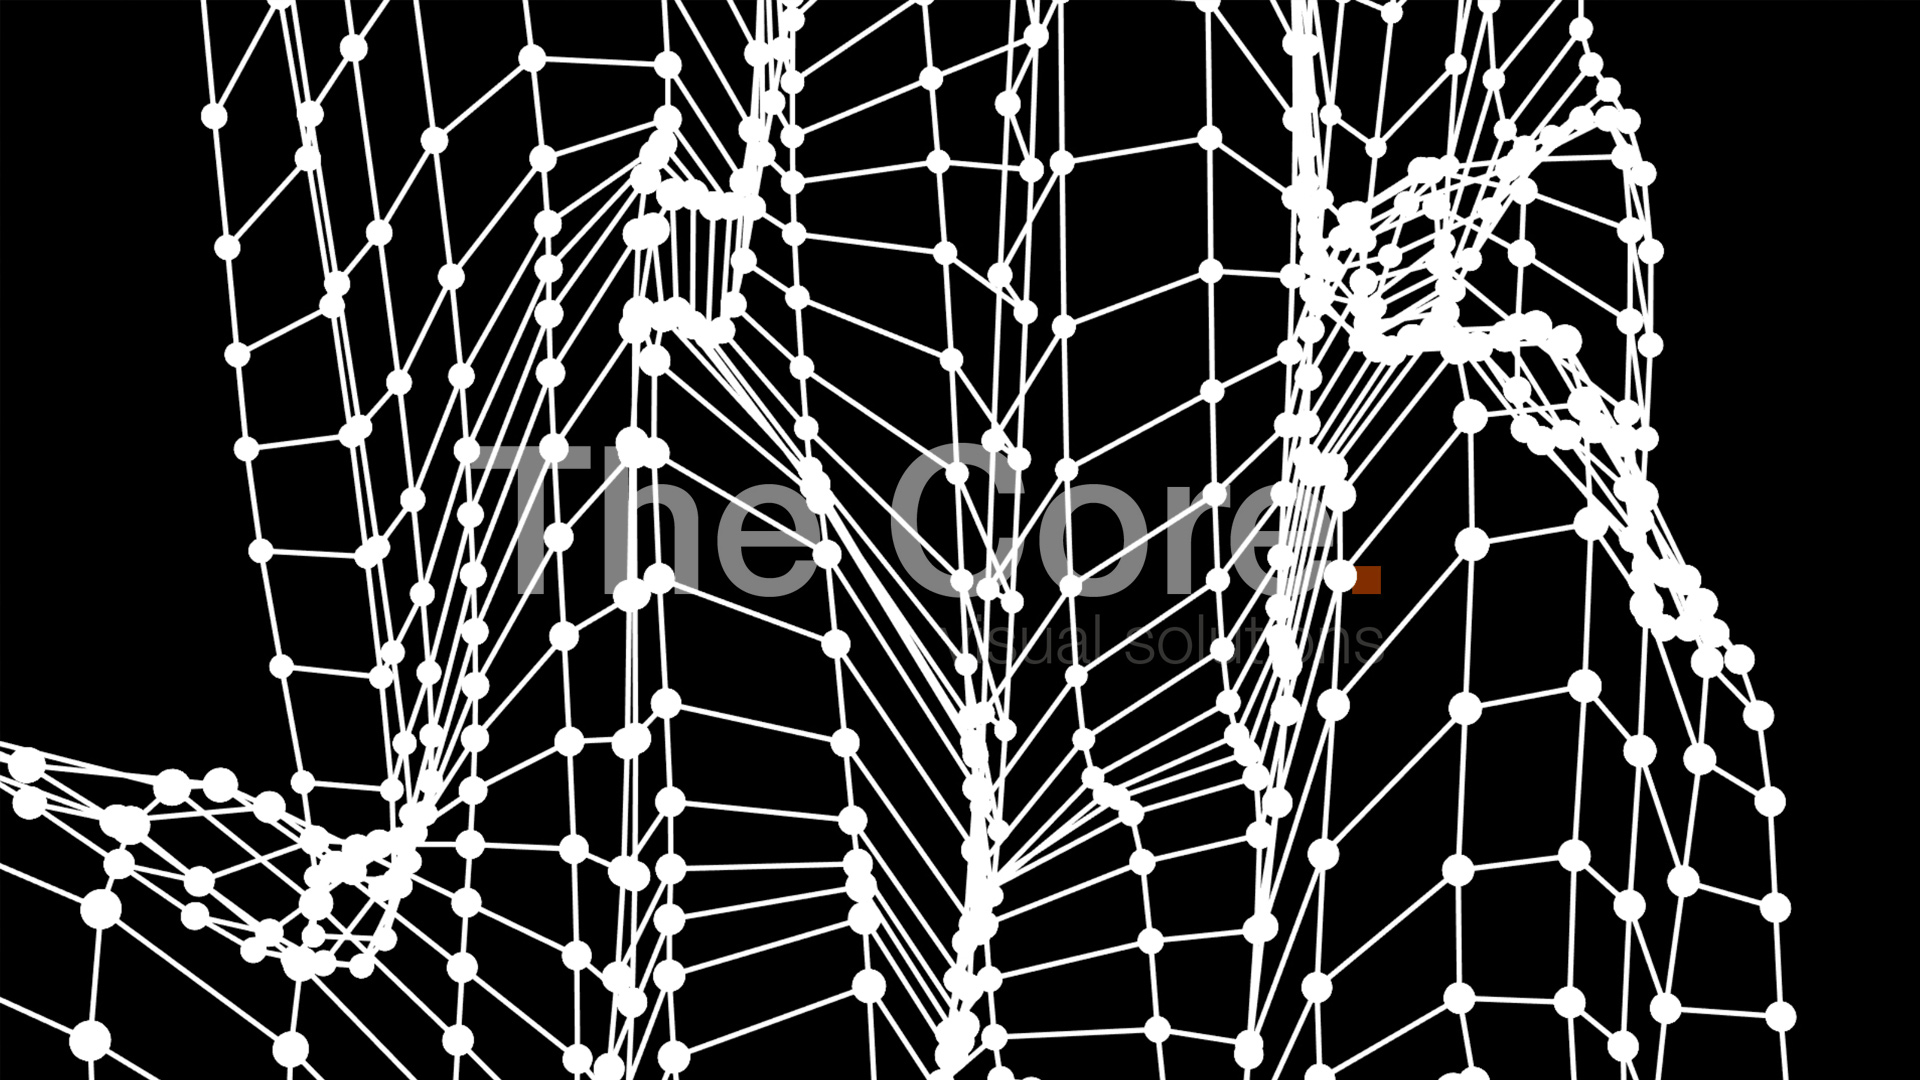 00071-WIRE-GRID-ZOOM-UP-1-STILL